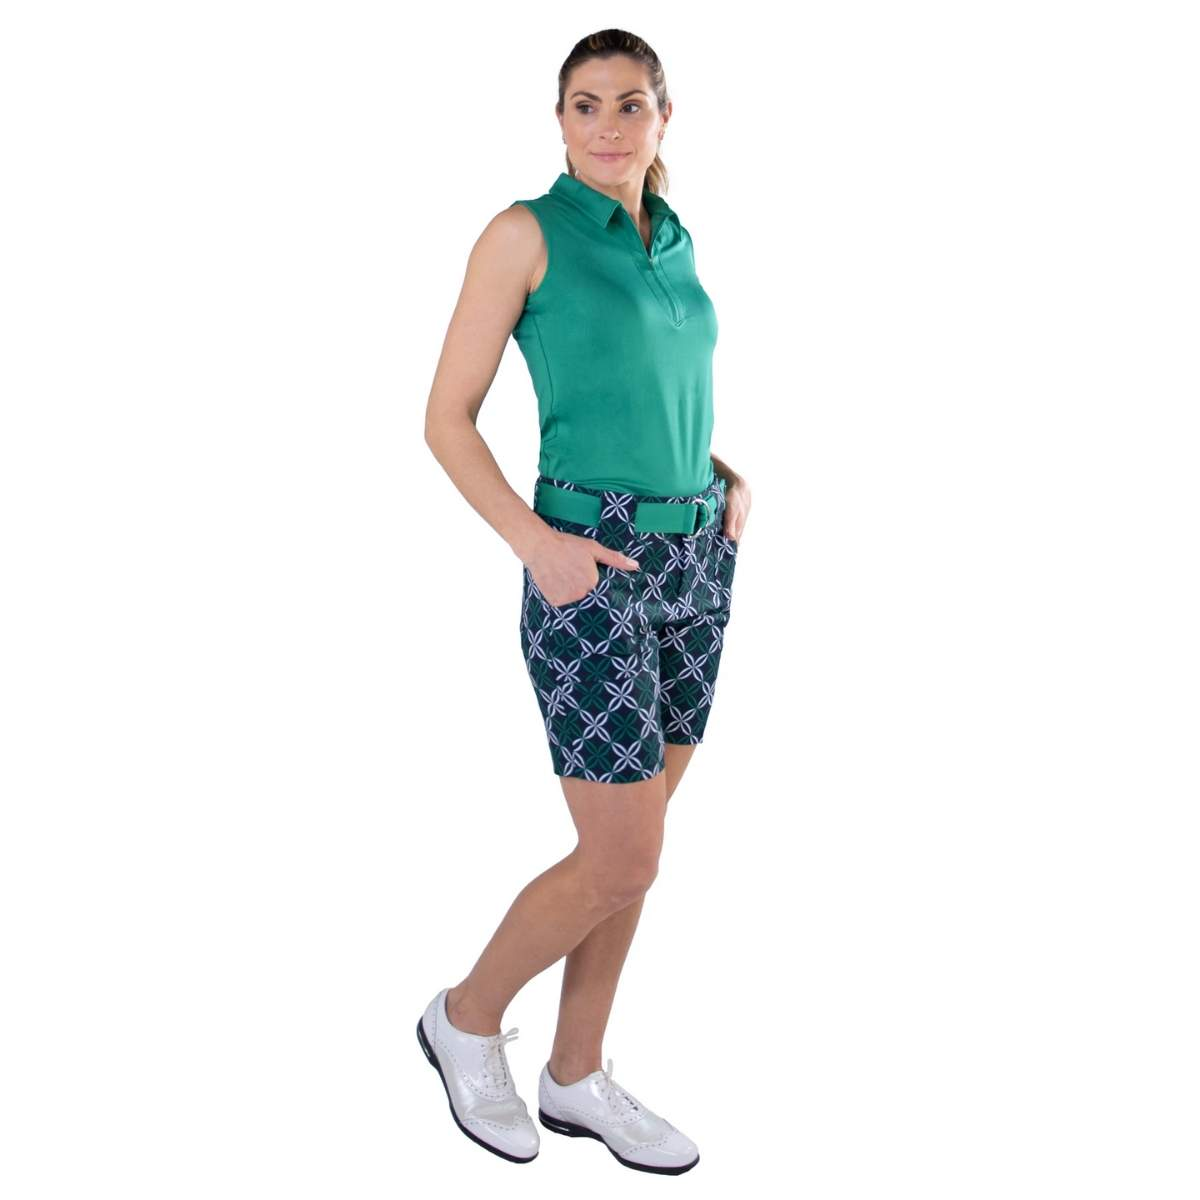 Jofit Women's Belted Appletini Golf Shorts